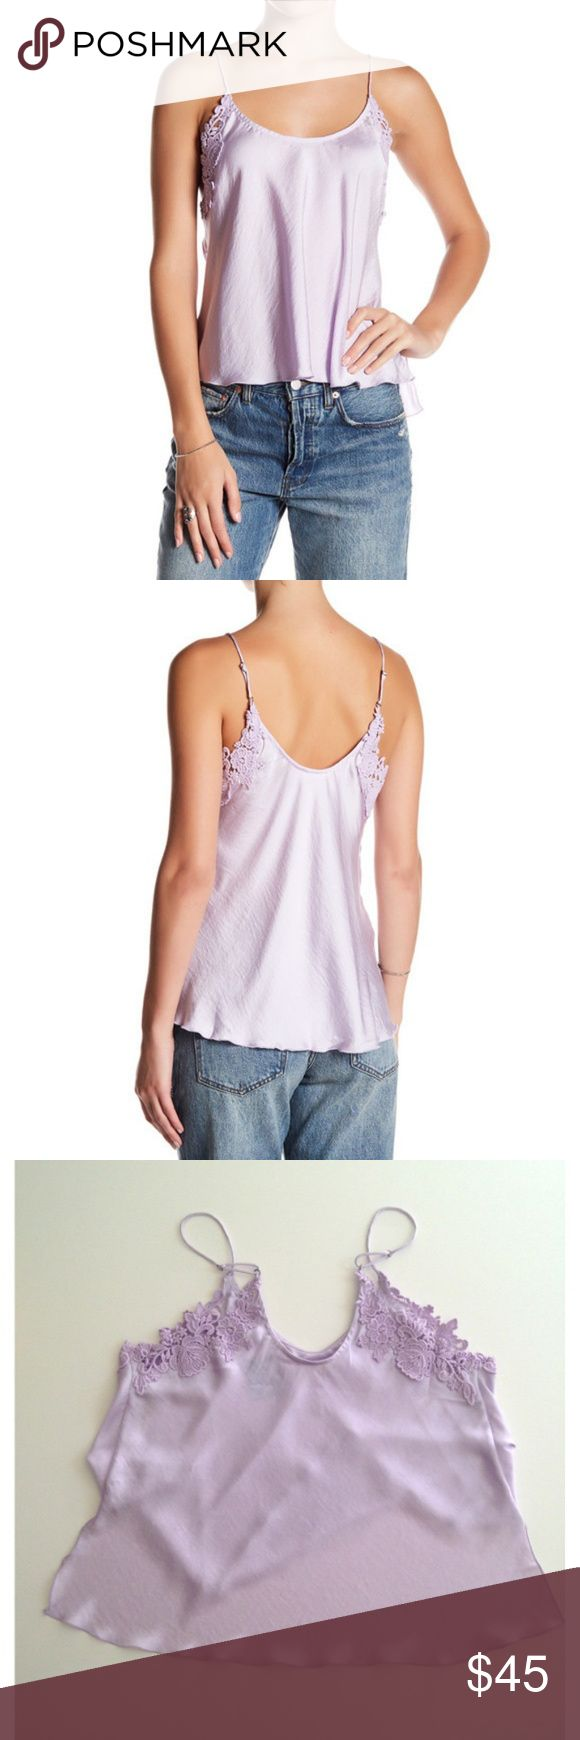 Free People Woah Applique Purple Cami Small NEW Free People Woah Applique Solid Lavender Purple Cami Small Scoop Neck Spaghetti NWT NEW  Scoop neck U-back Adjustable spaghetti straps Crochet floral trim Hi-lo hem  Fabric content: 100% polyester Care: hand wash cold Free People Tops Camisoles